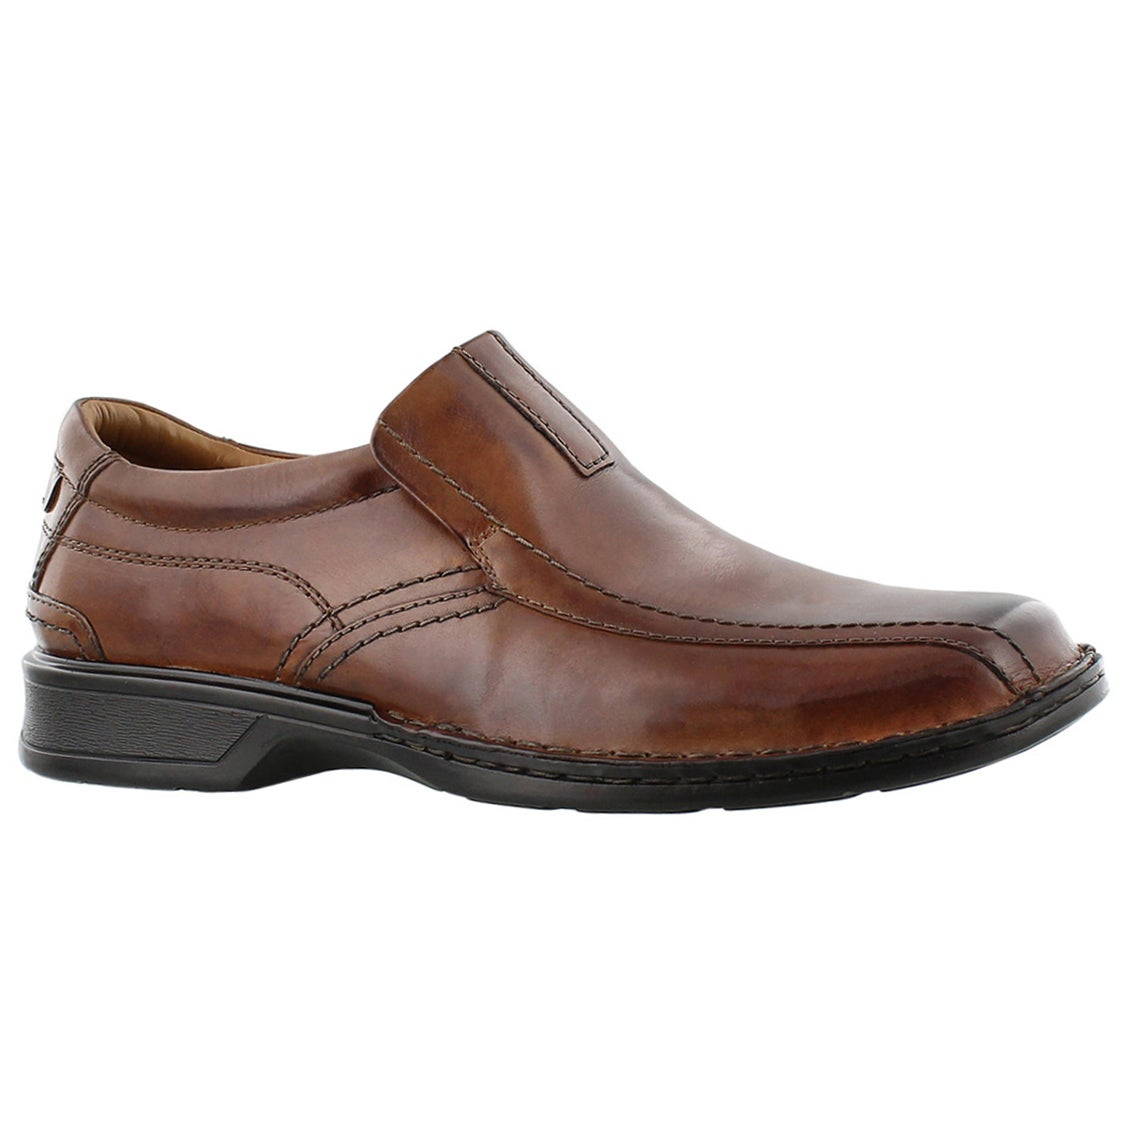 Men's ESCALADE STEP brown slip on dress shoes